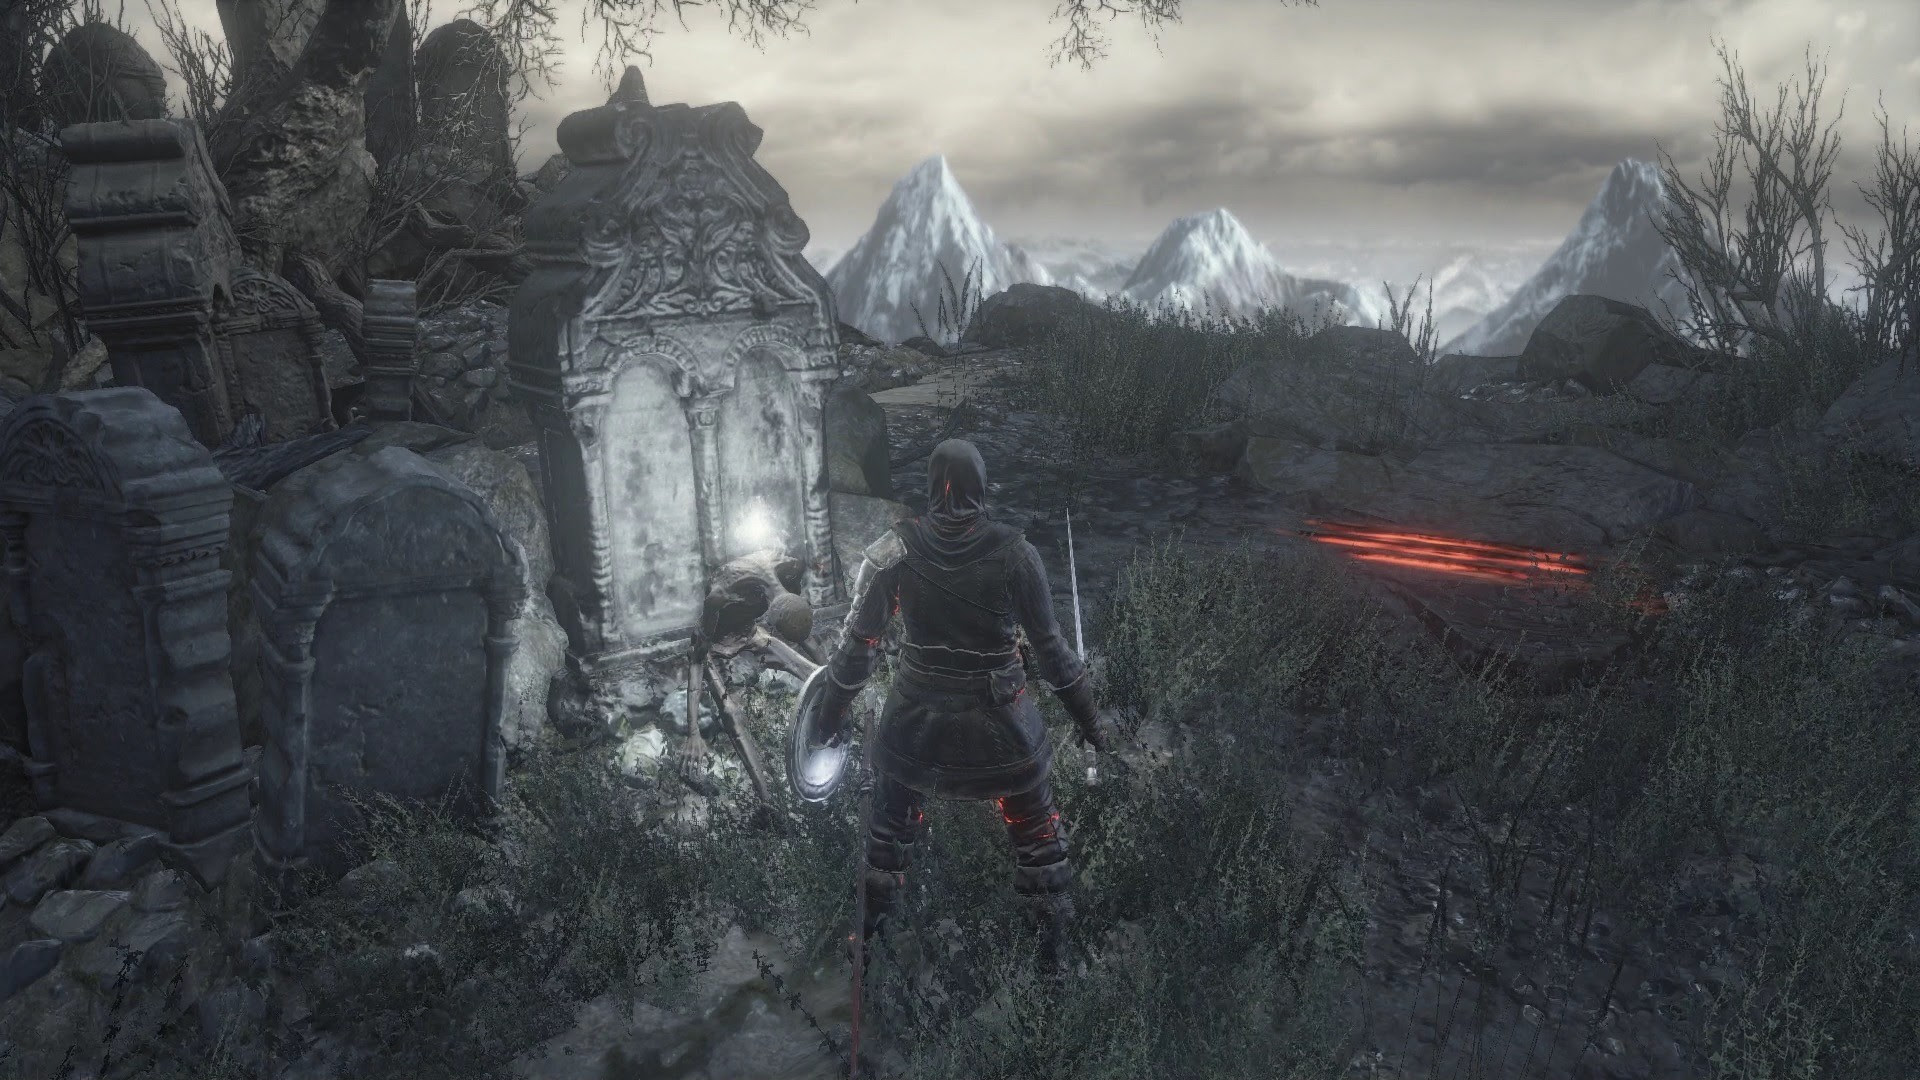 Dark Souls 3 Animated Wallpaper 81 Images